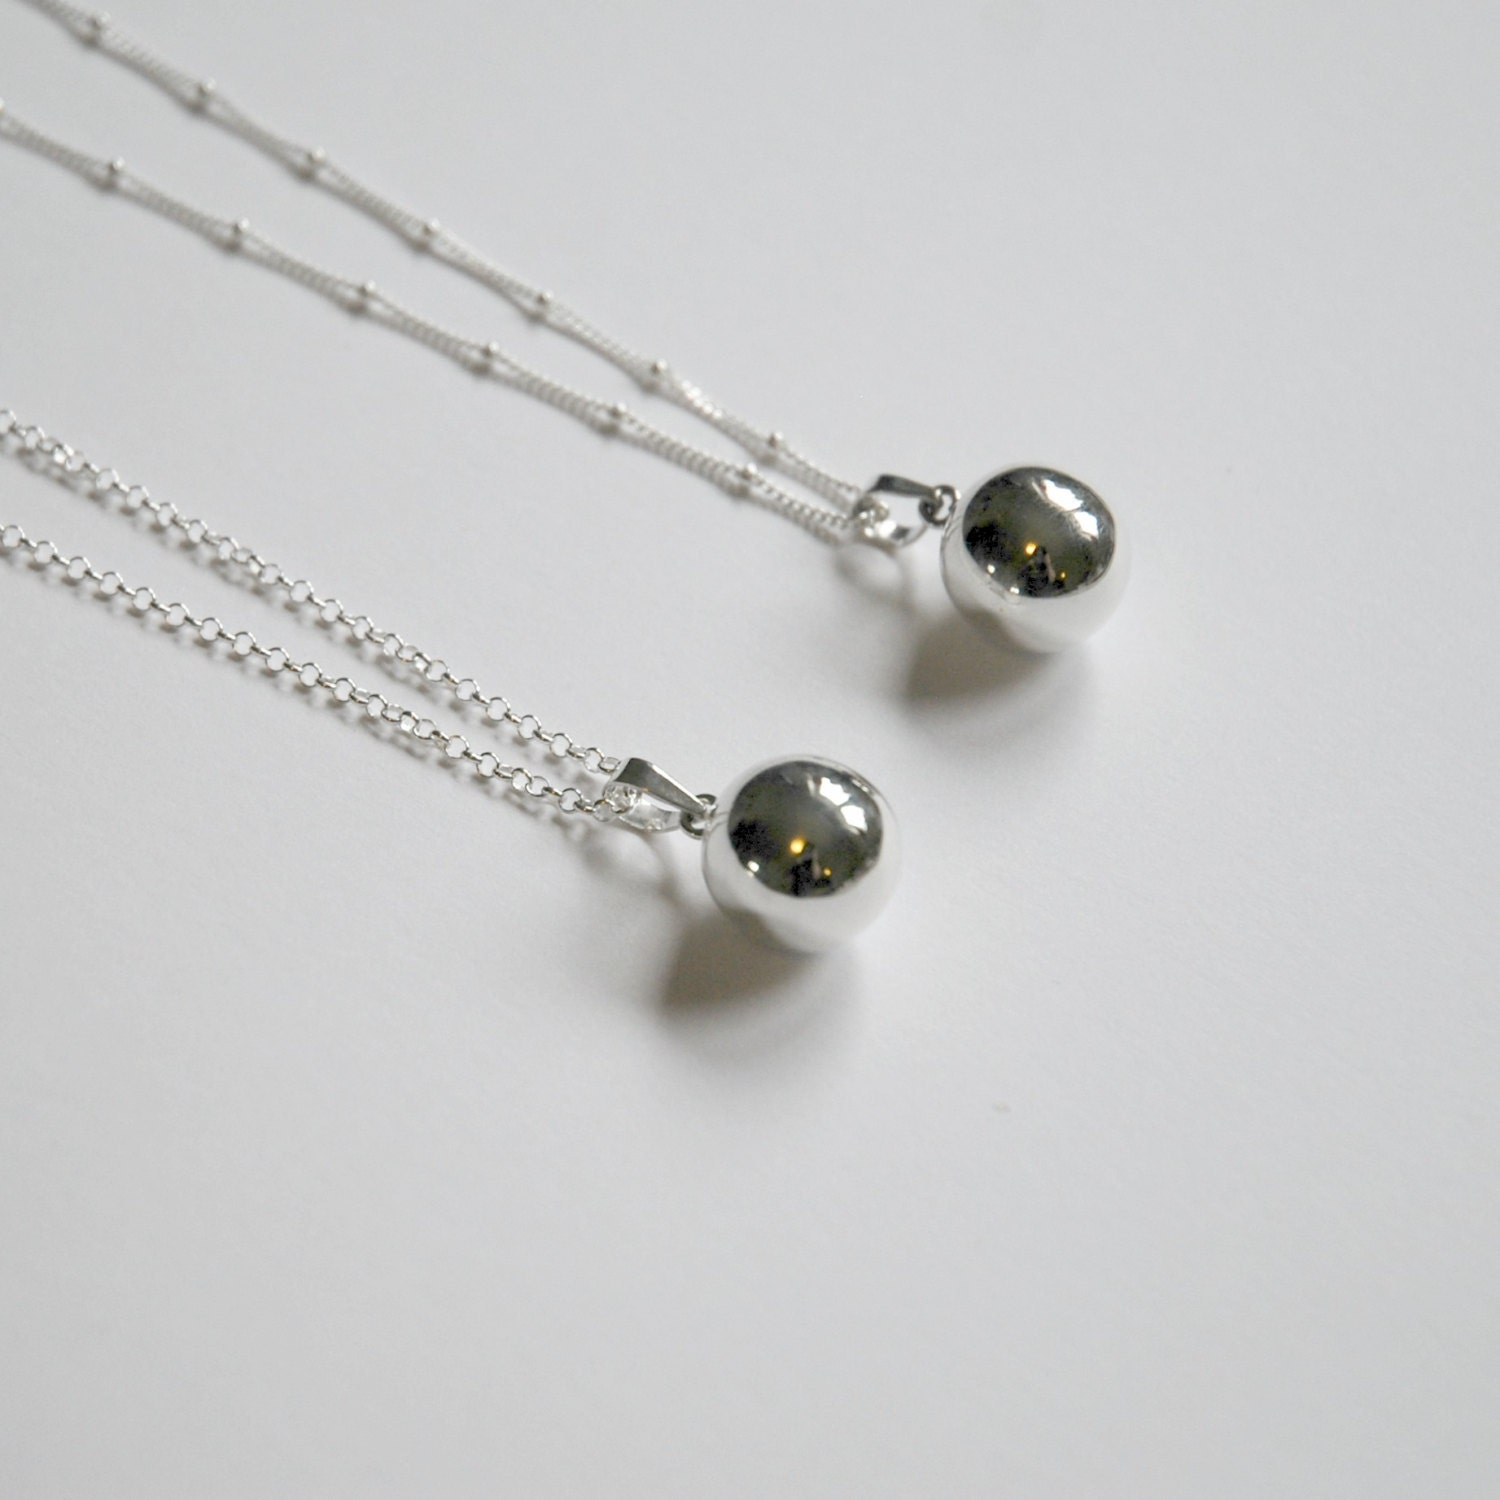 Harmony ball necklace sterling silver harmony ball pendant zoom aloadofball Images